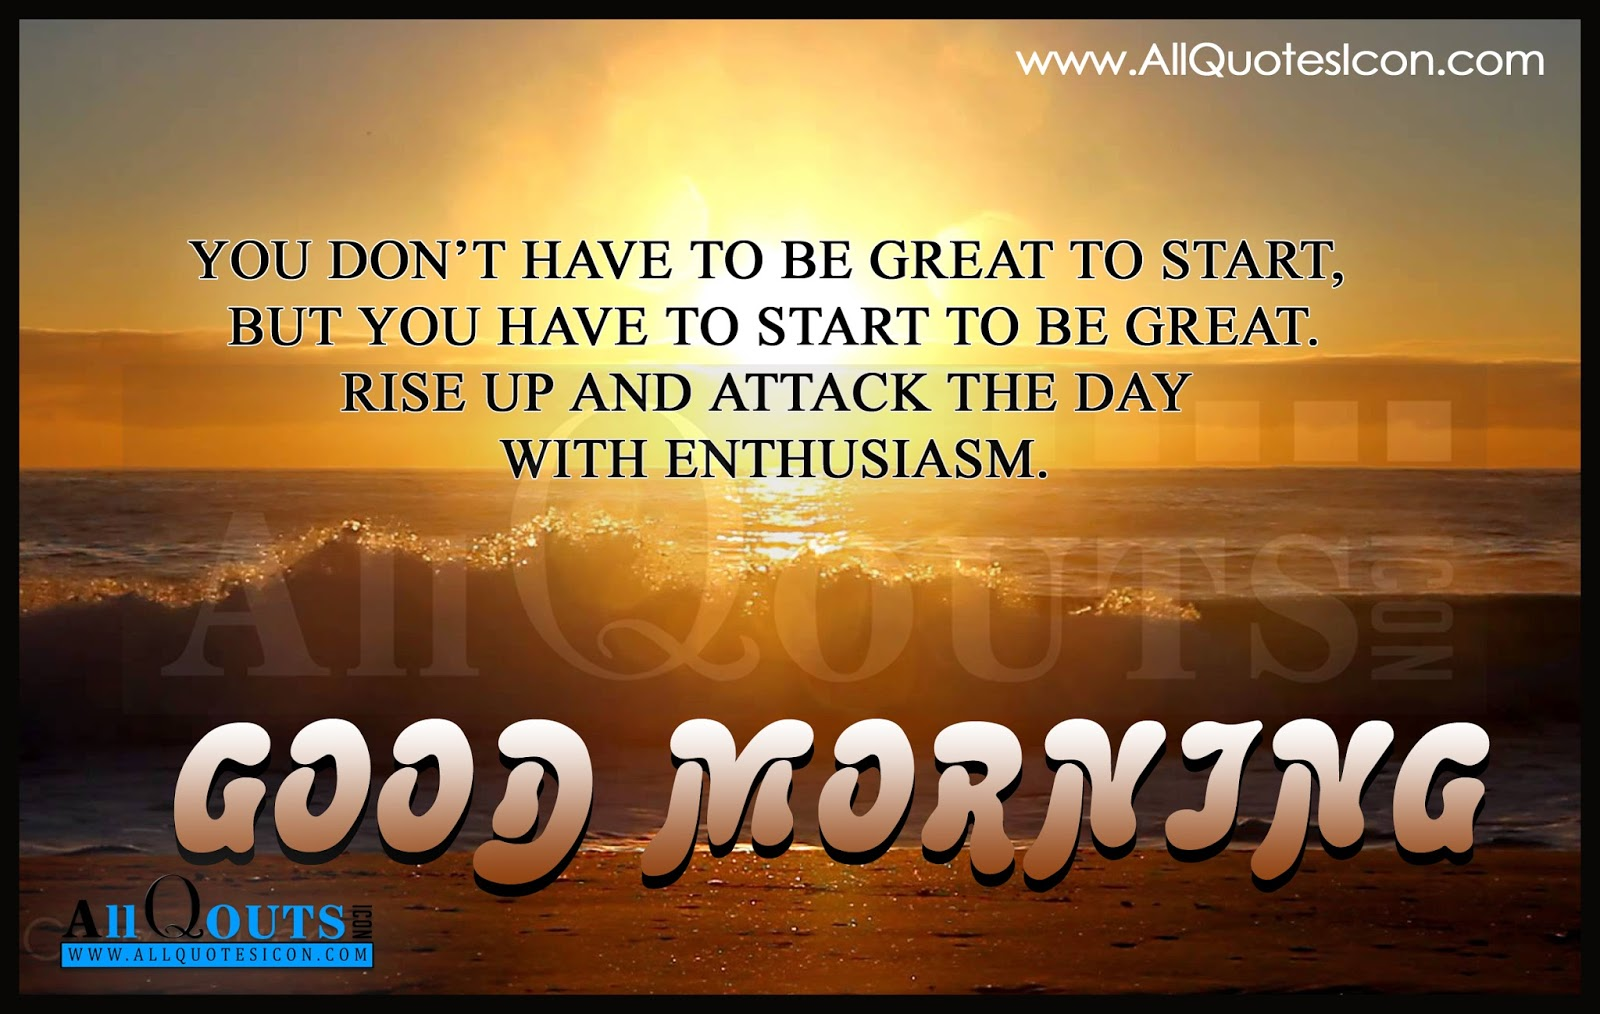 Good Morning Quotes Motivational In English : Good morning quotes and sayings in english